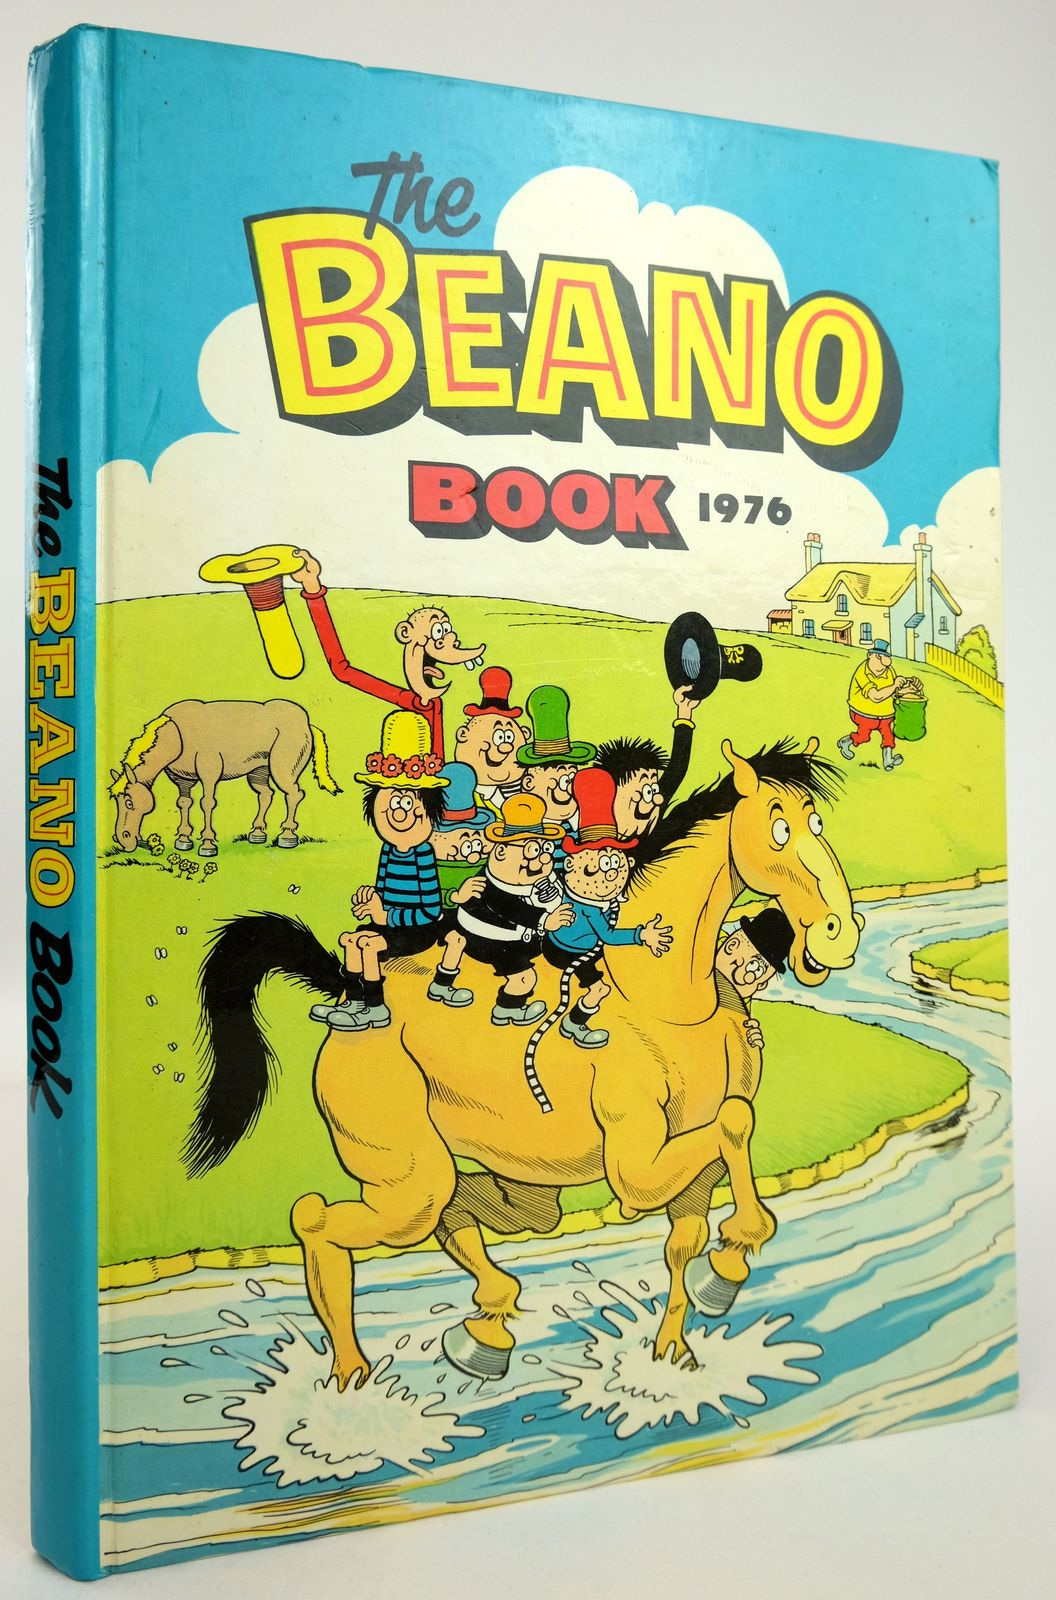 Photo of THE BEANO BOOK 1976 published by D.C. Thomson & Co Ltd. (STOCK CODE: 1819567)  for sale by Stella & Rose's Books